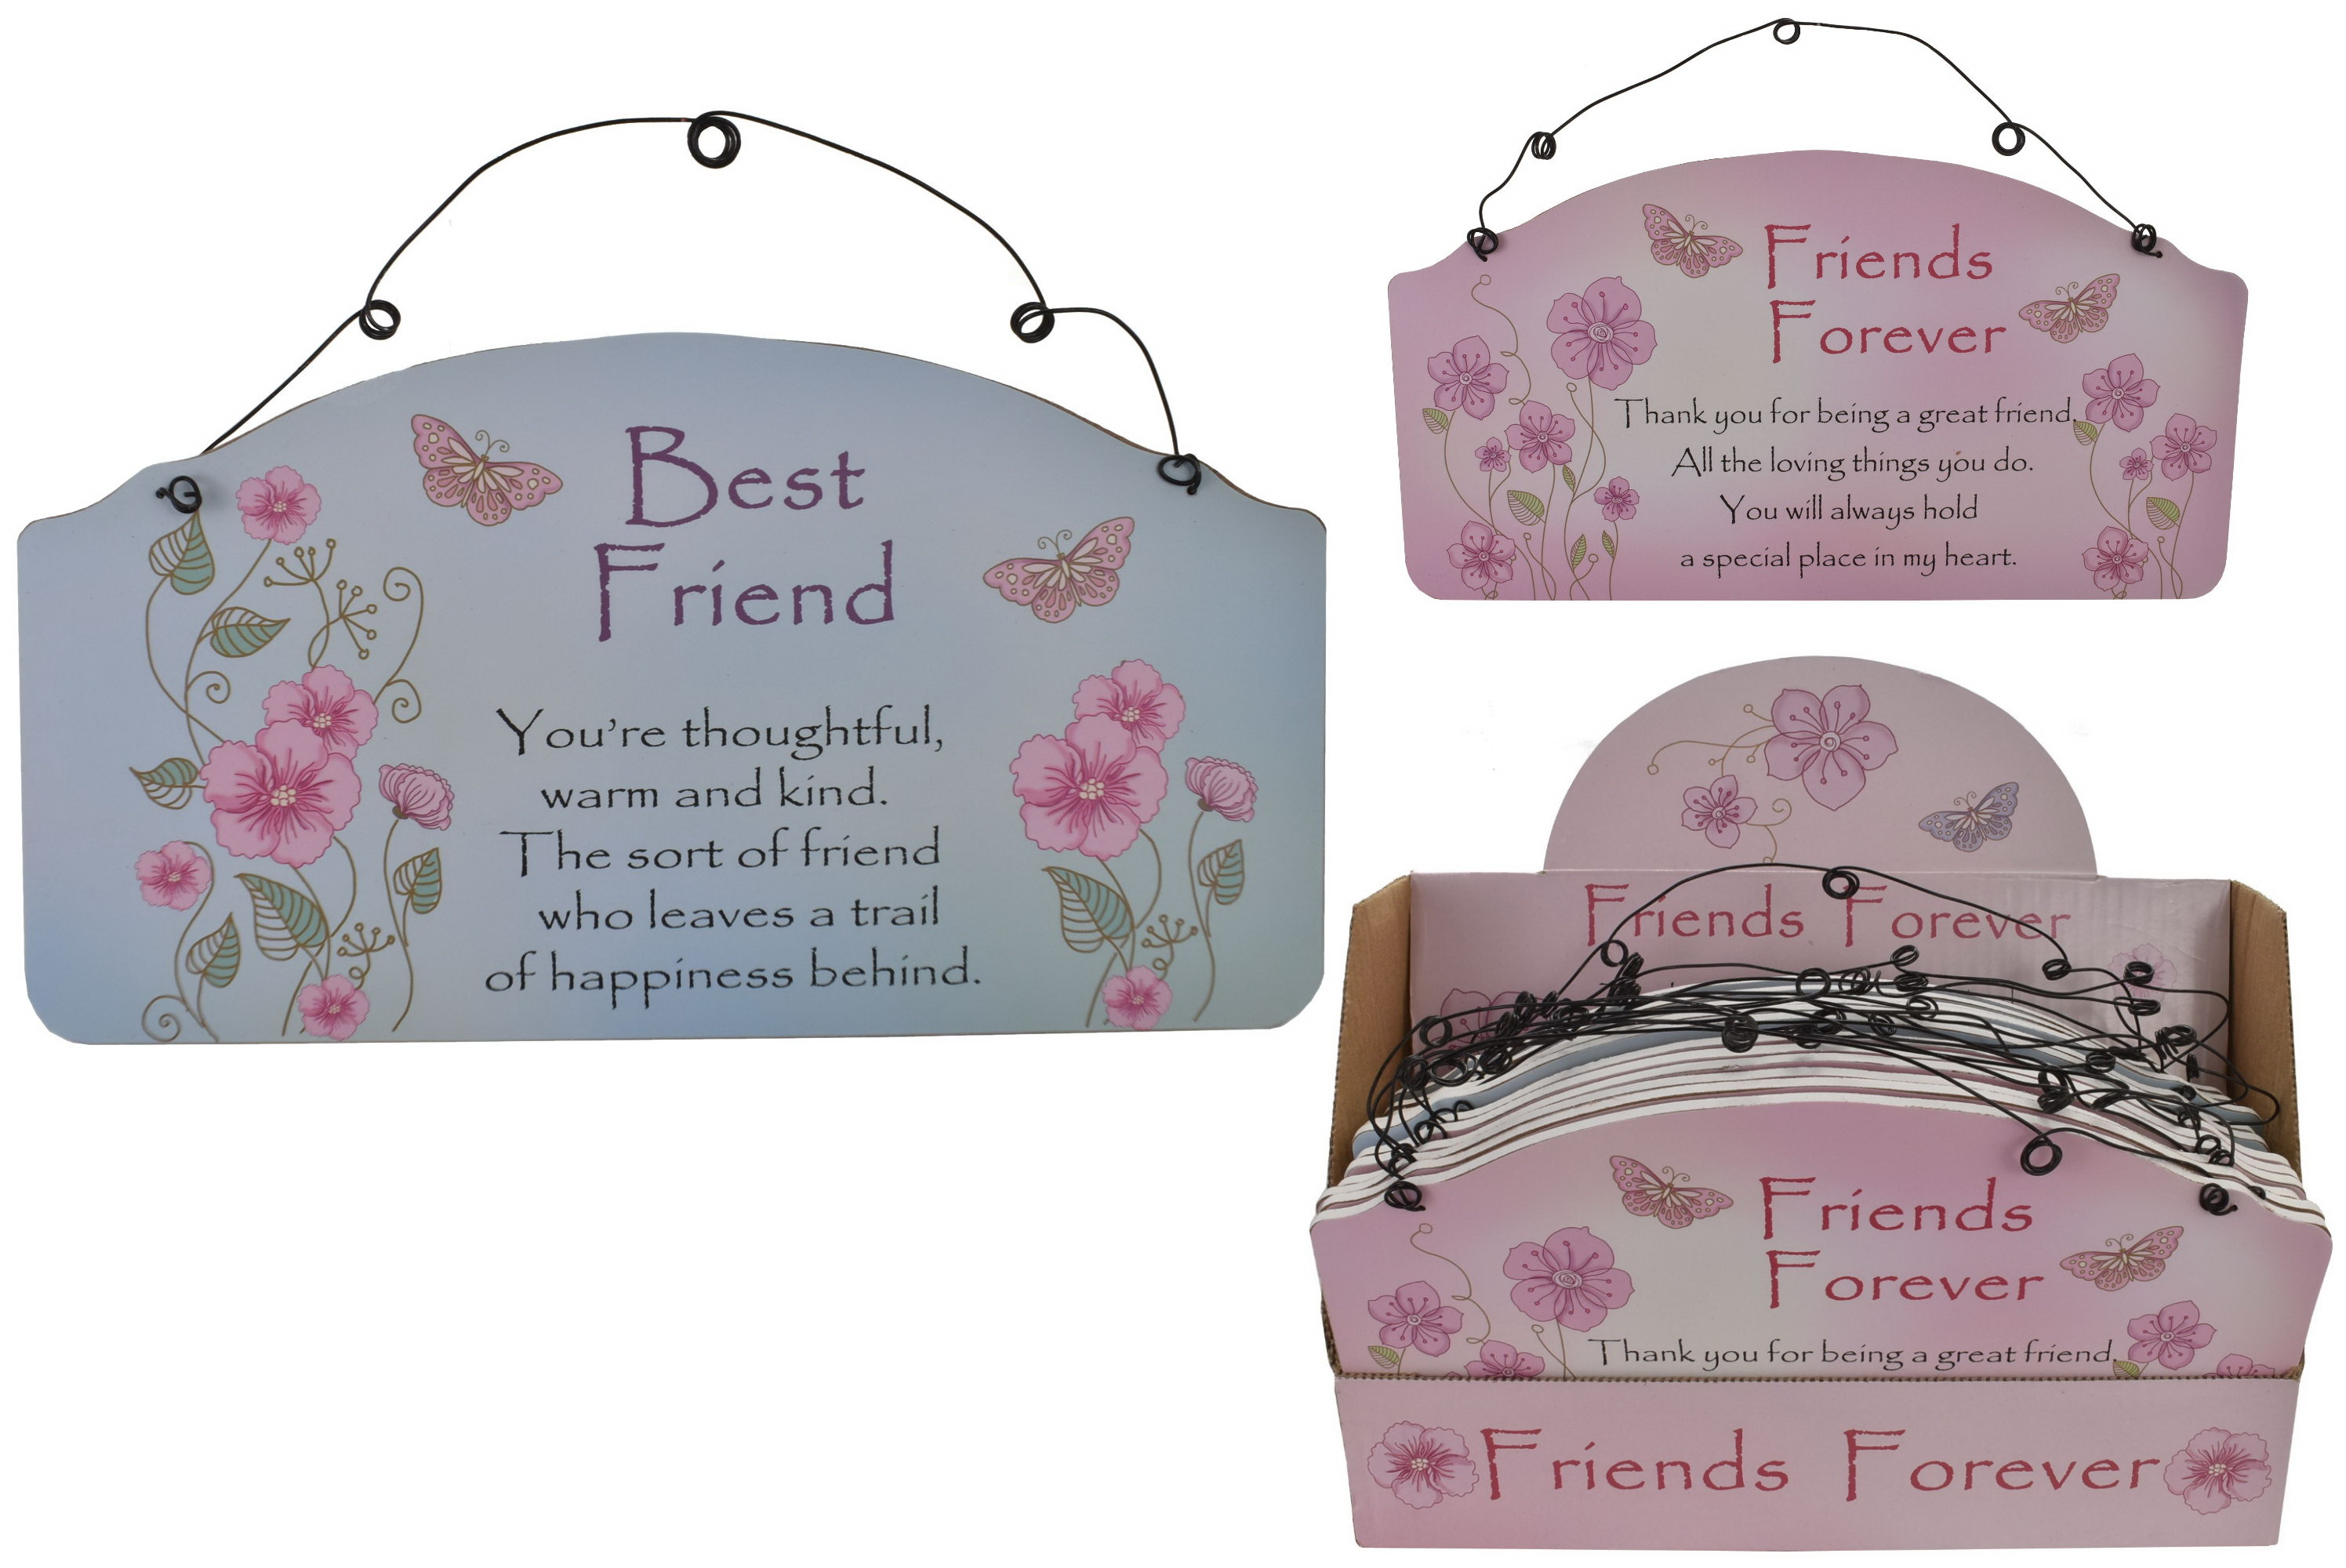 Friends Forever Wooden Plaque (2 Asst) In Display Box